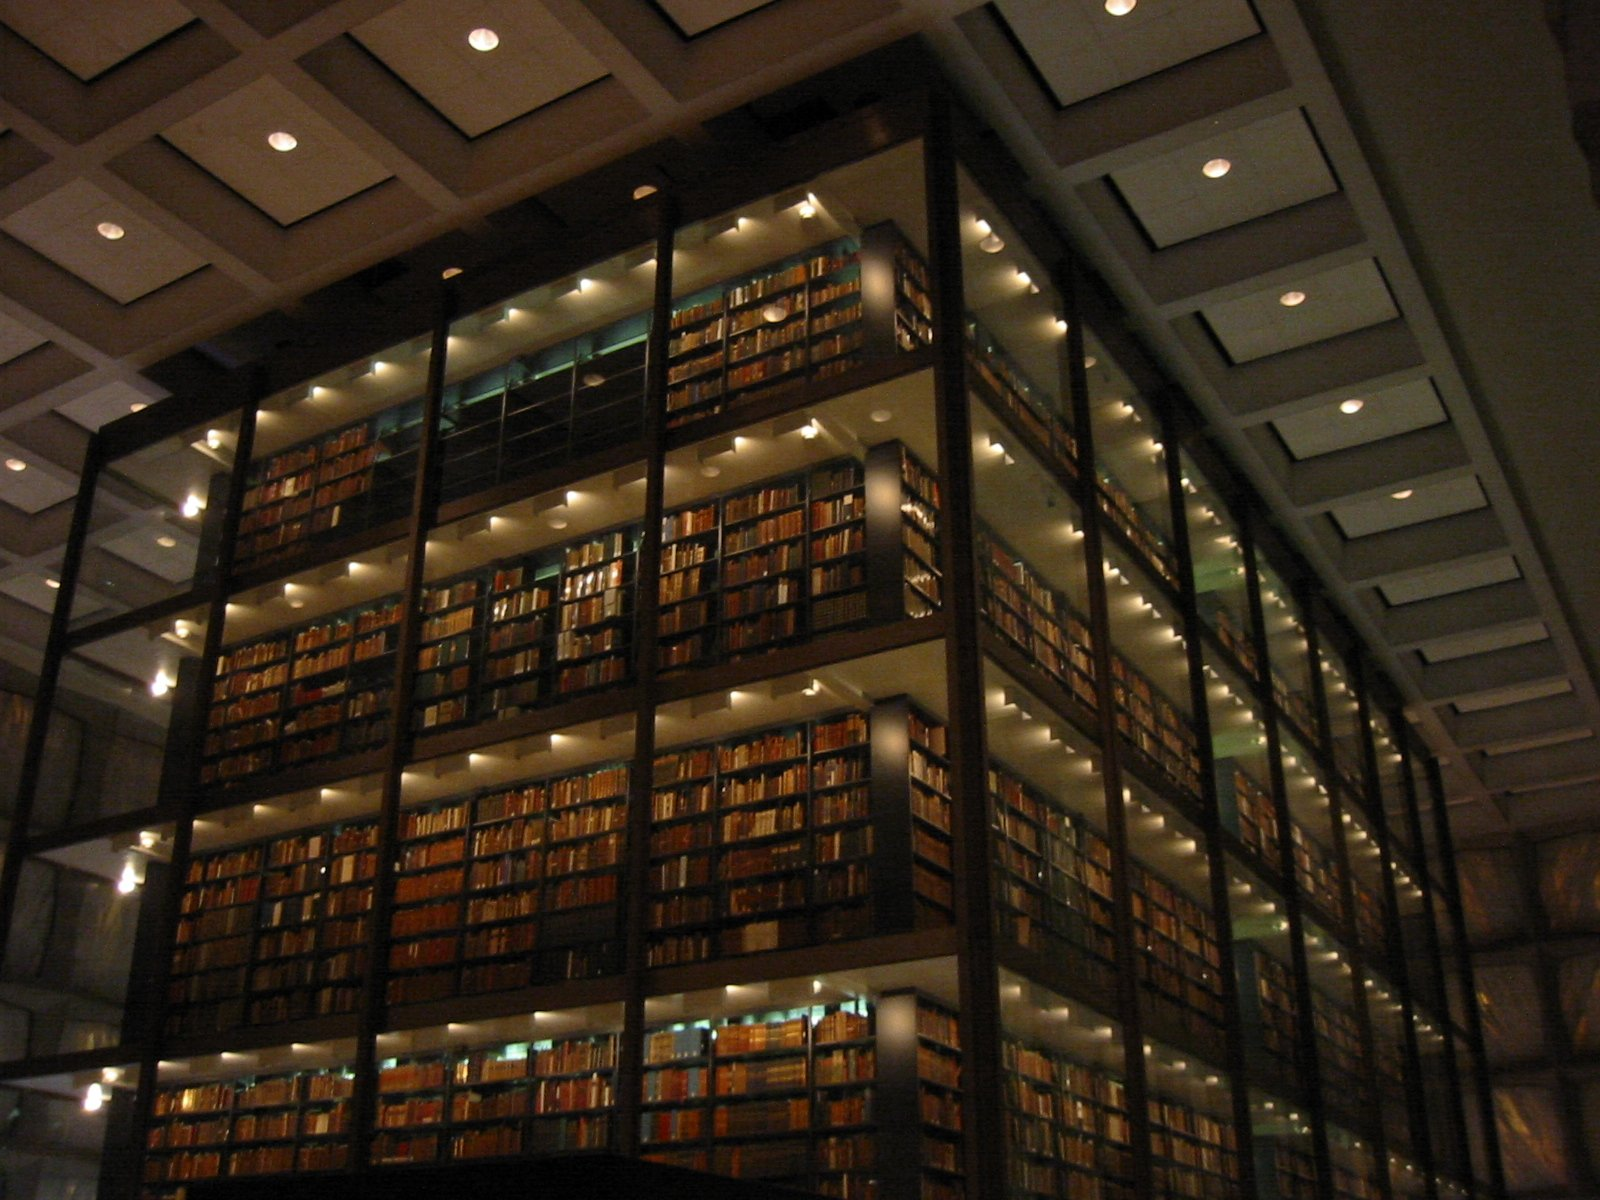 FileBeinecke Library interior 2JPG   Wikimedia Commons 1600x1200